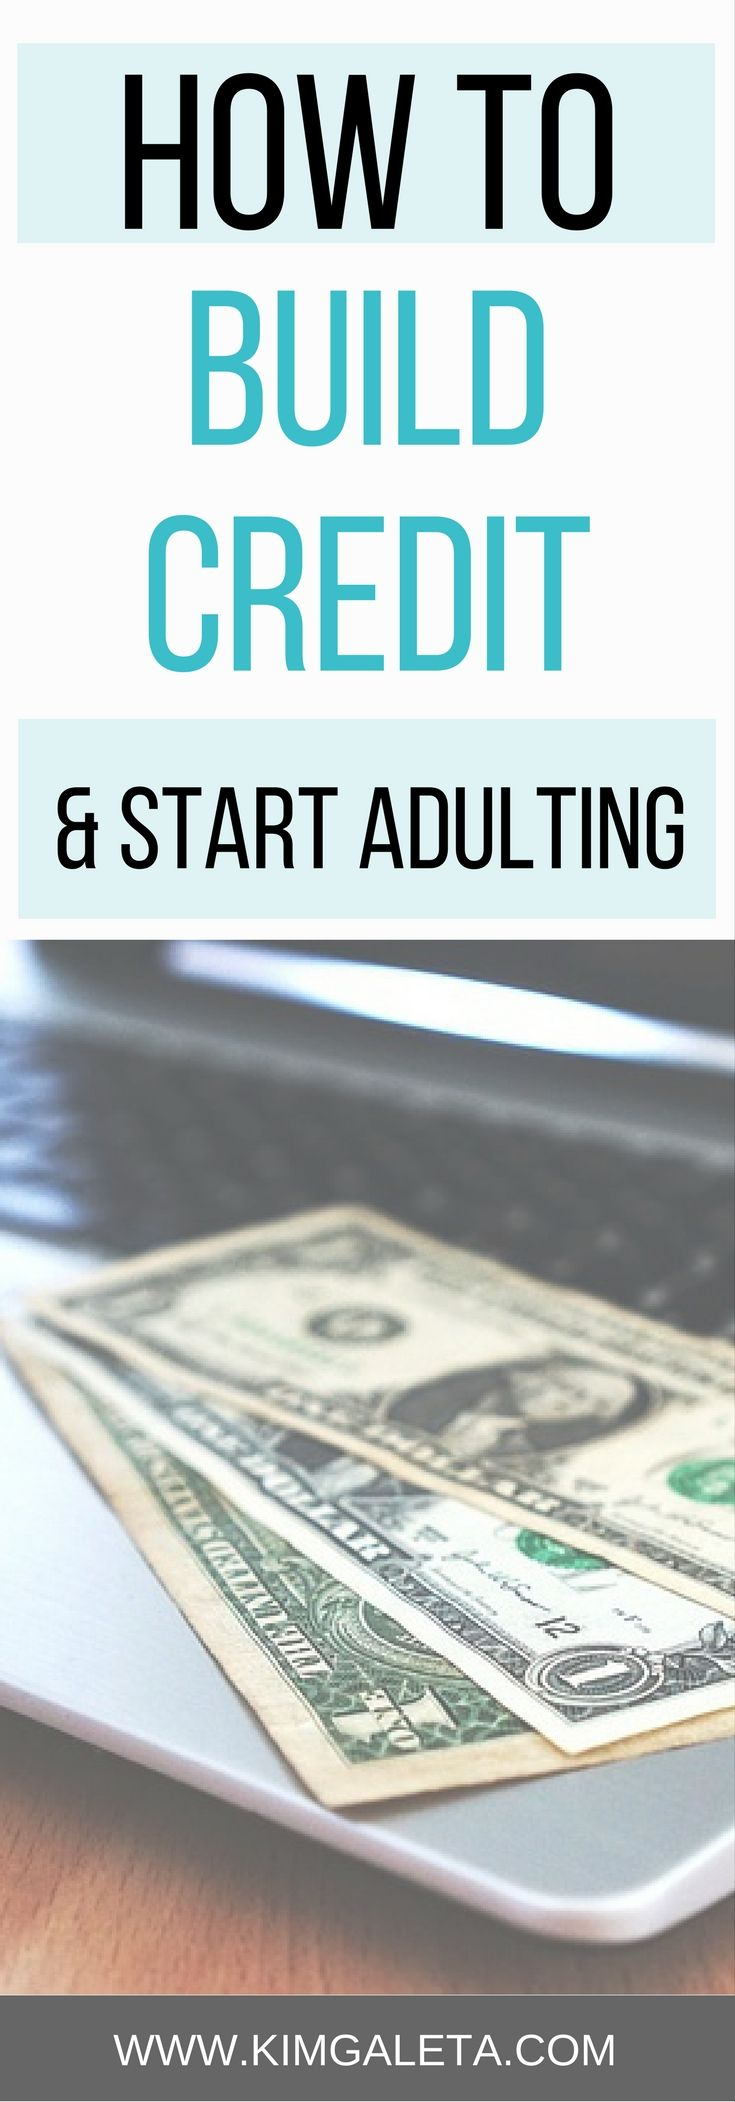 How To Build Your Credit And Start Adulting